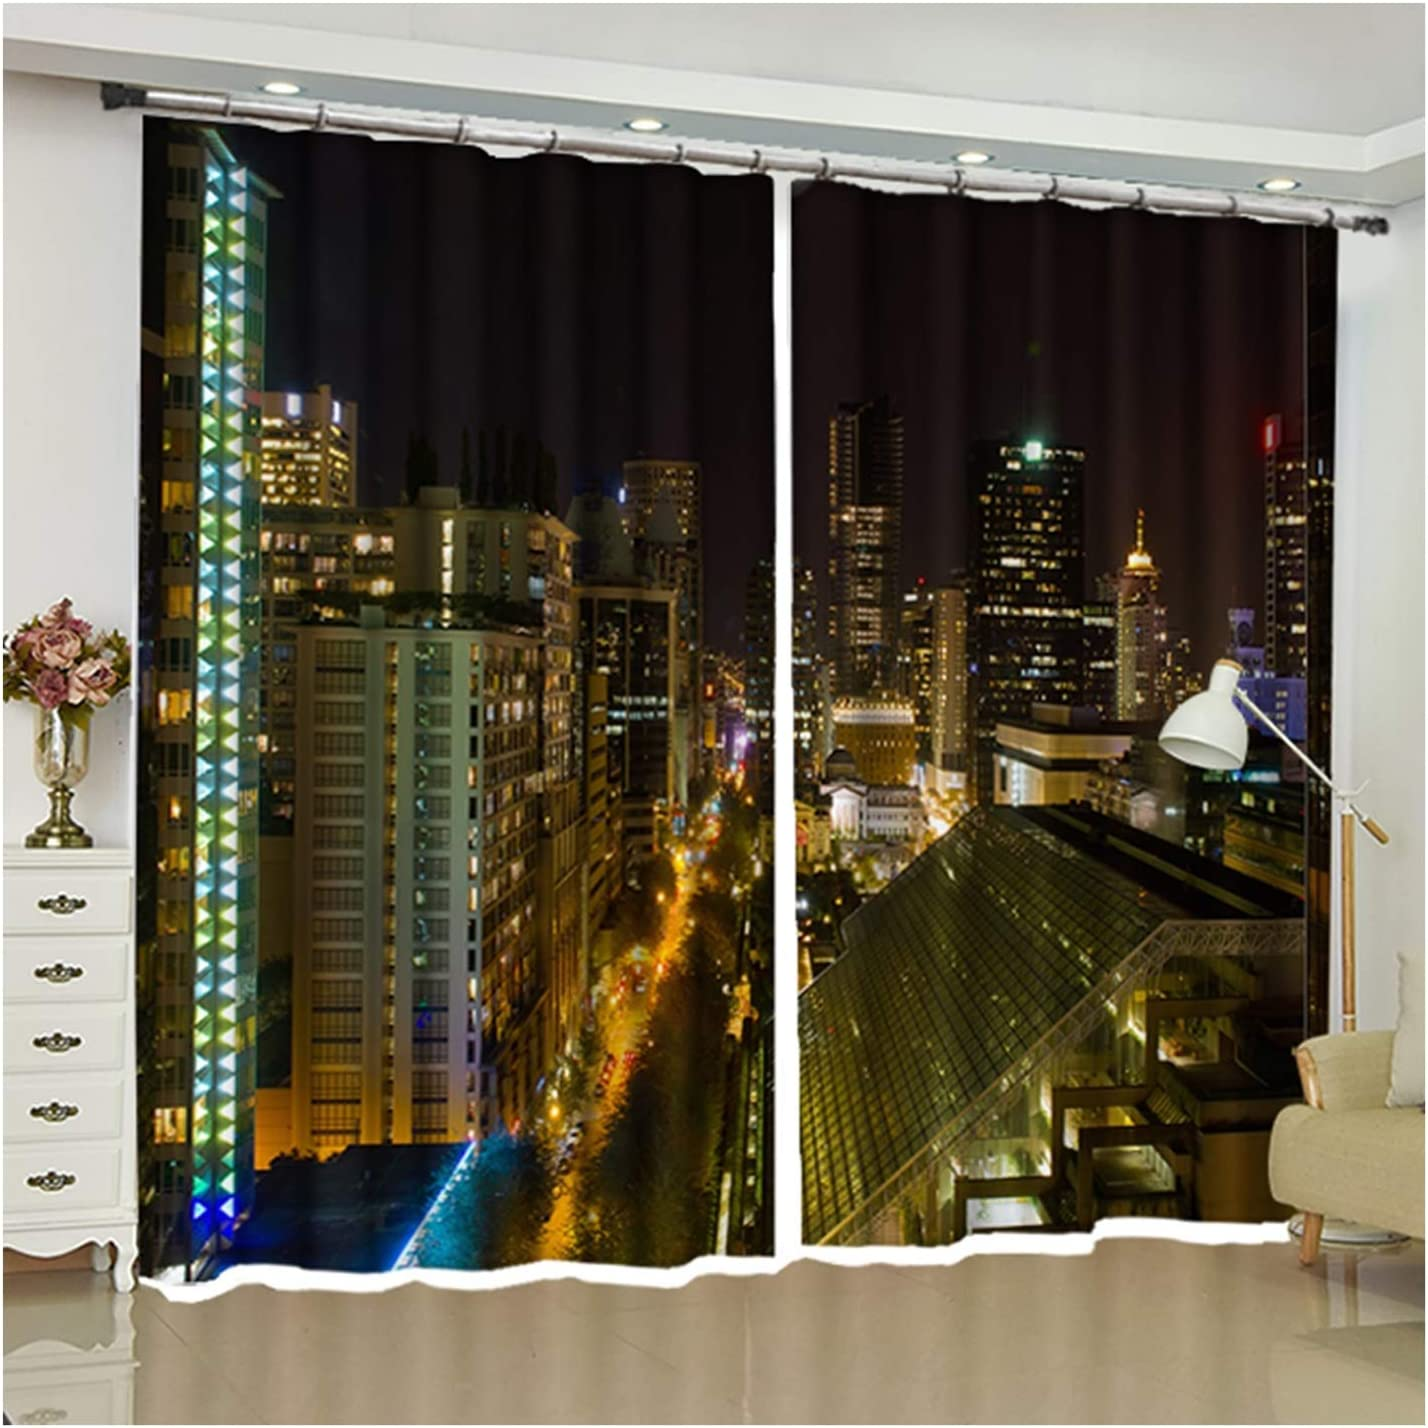 Daesar Same day shipping Bedroom Curtains Blackout Drapes Curtain Room Living Manufacturer direct delivery for